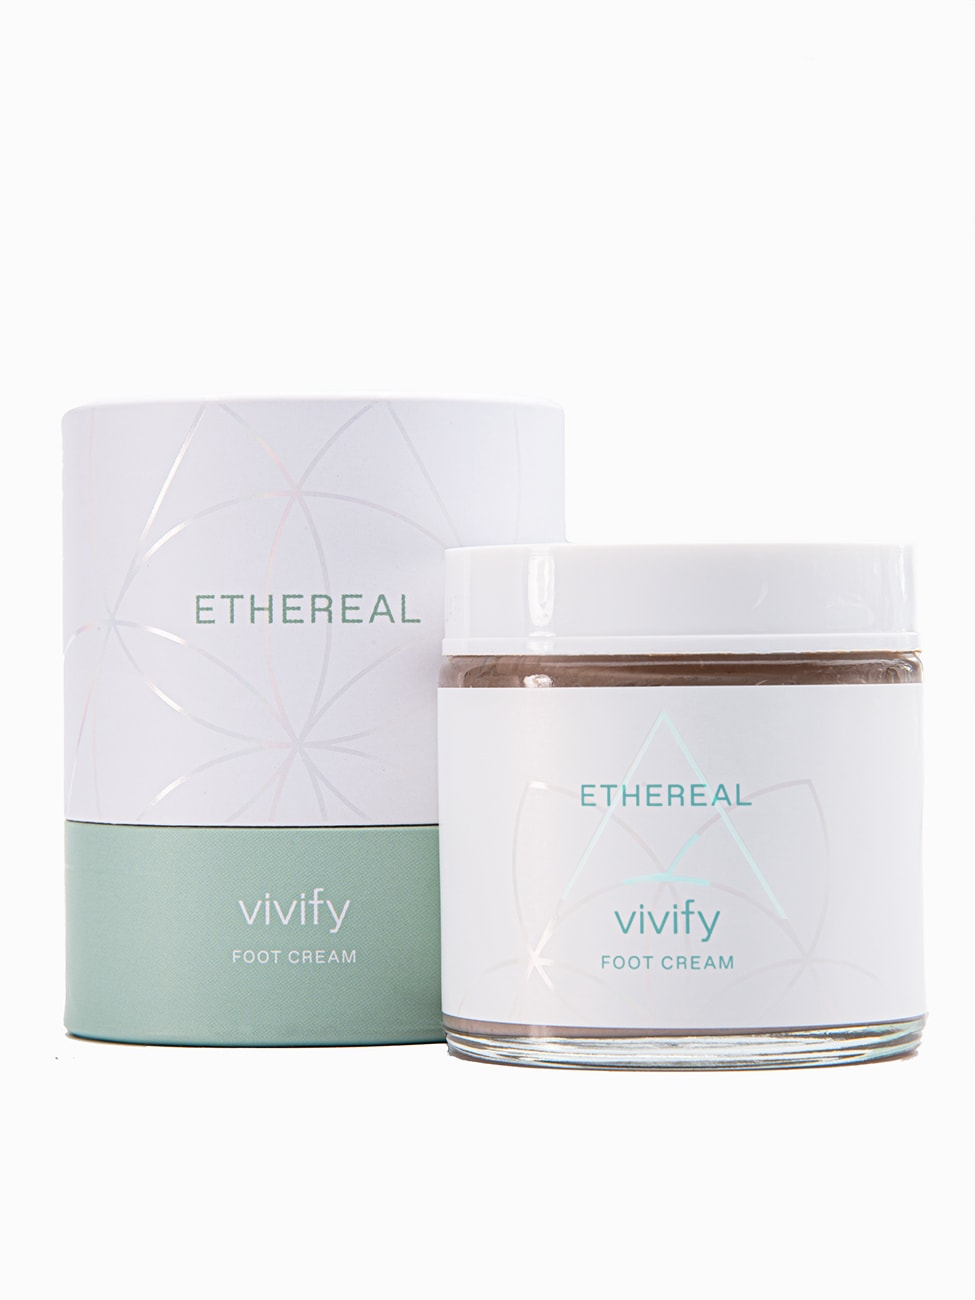 Vivify_Cream_Package_Ethereal_Dermocosmetics_Skincare_Handmade_Greek_Products